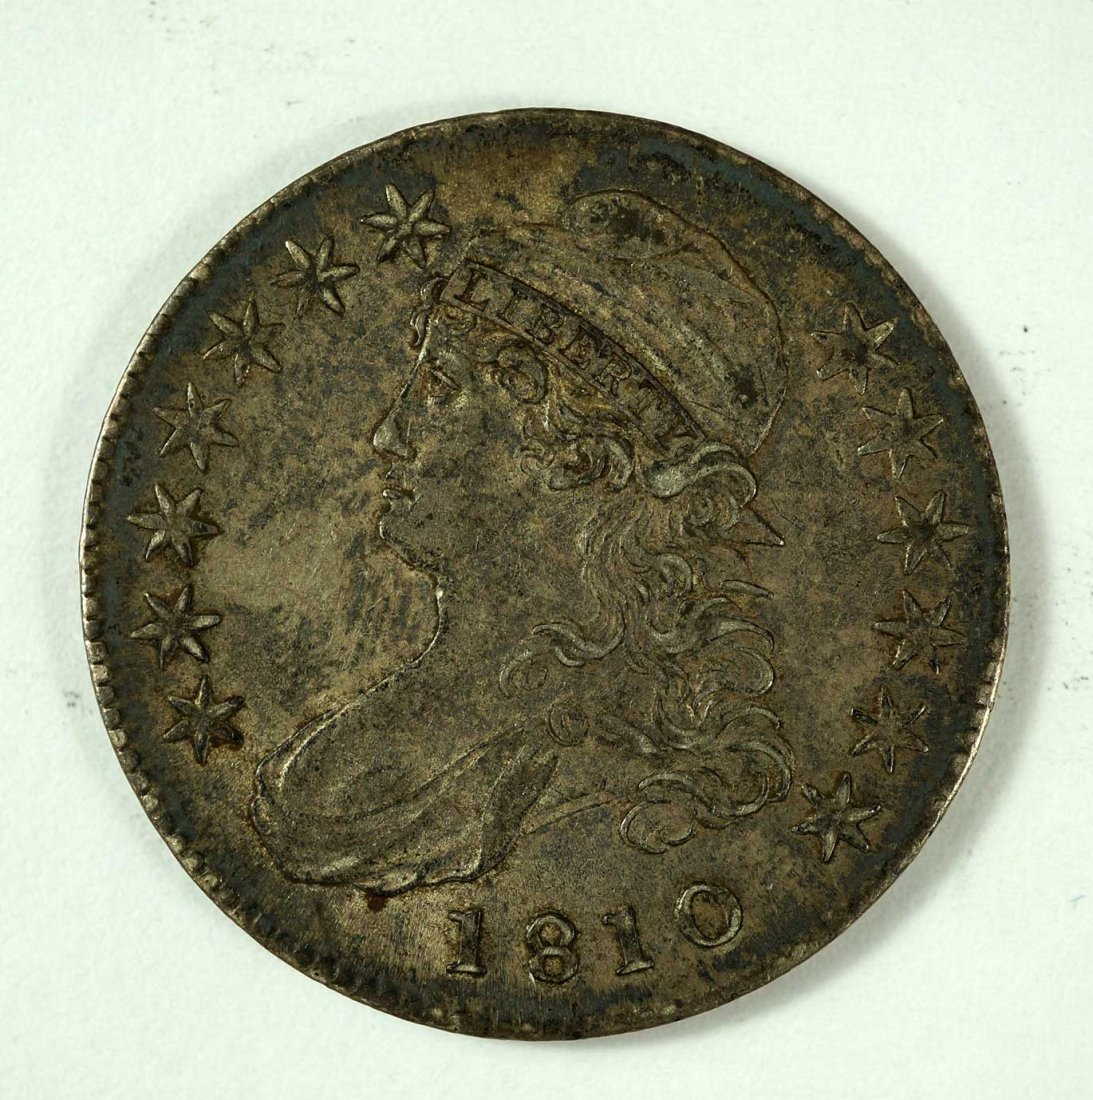 1810 US Capped Bust Half Dollar, Lettered Edge